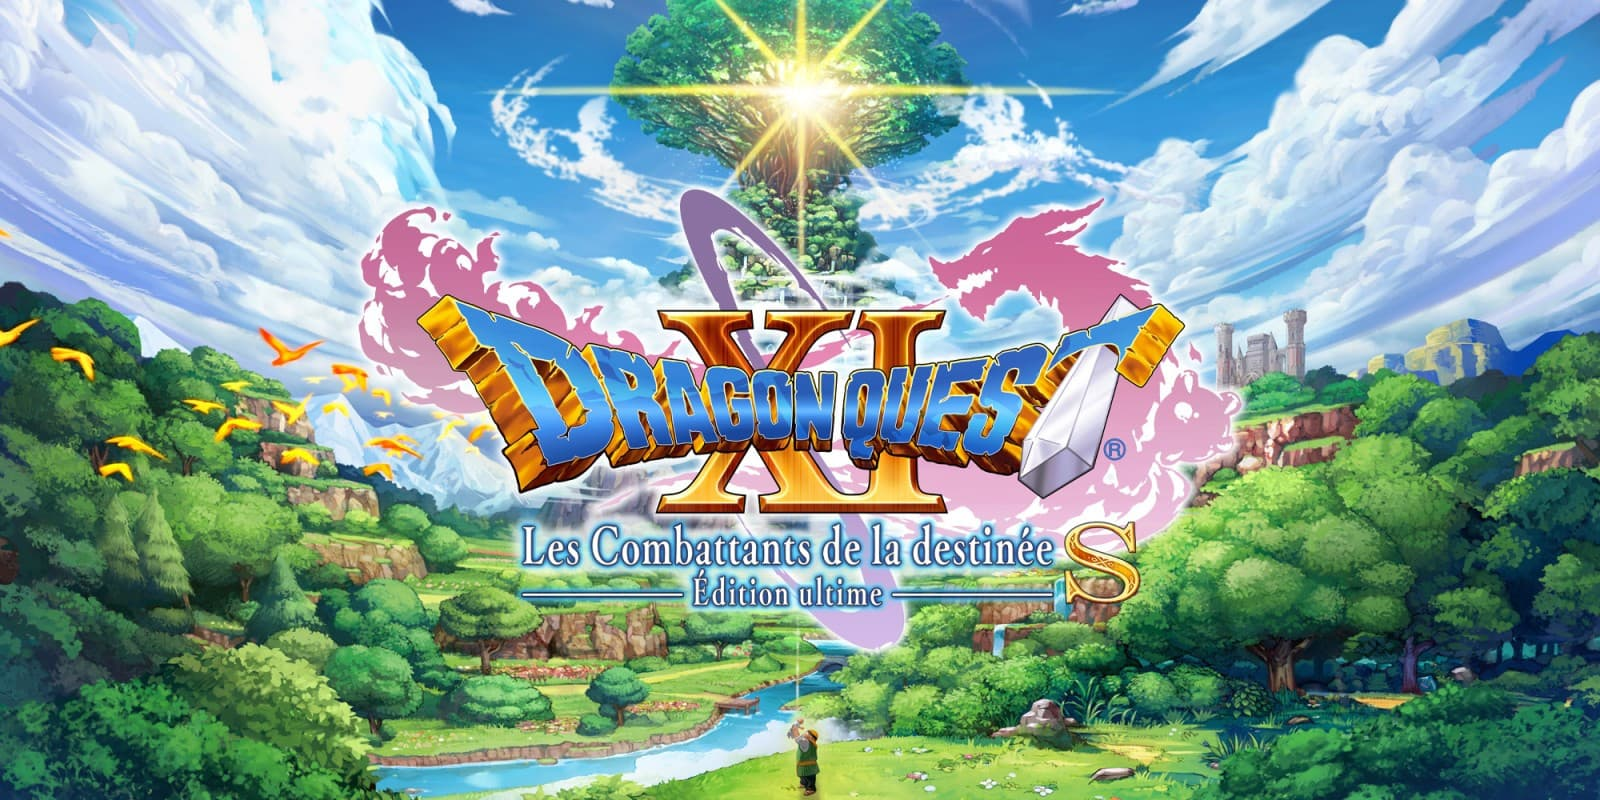 Jaquette Dragon Quest XI S: Les Combattants de la Destinée - Definitive Edition